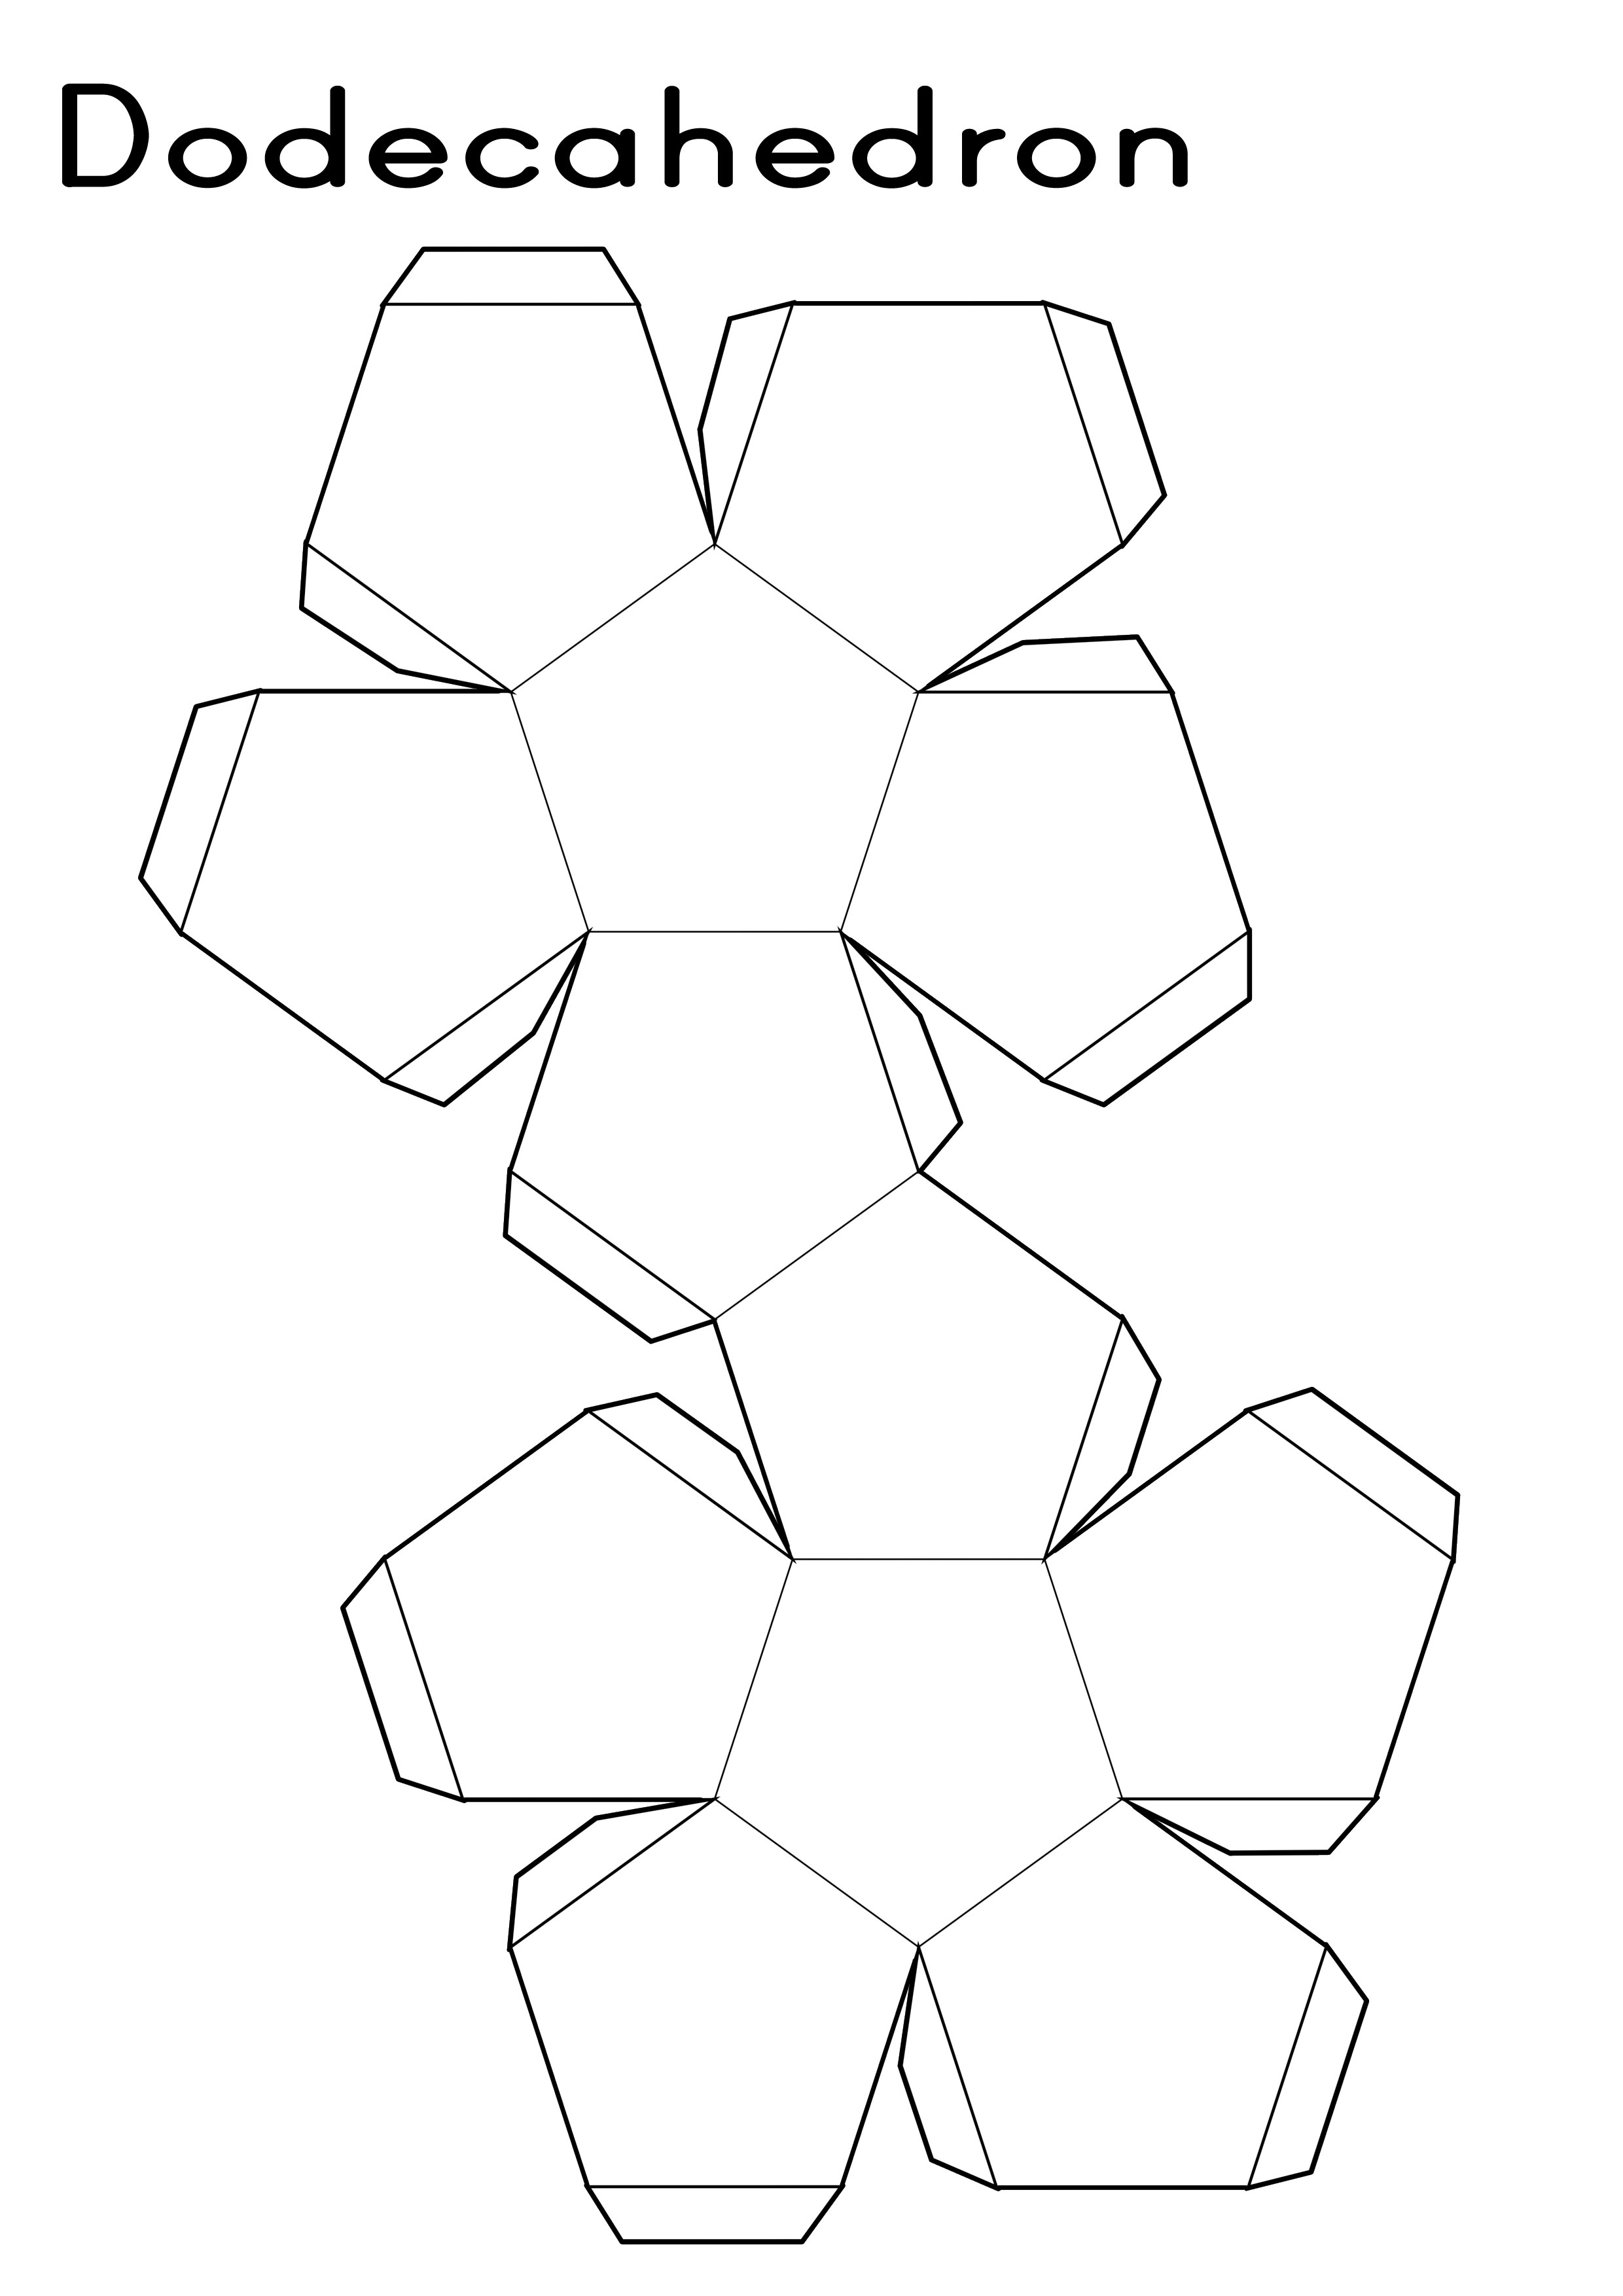 Dodecahedron Printable